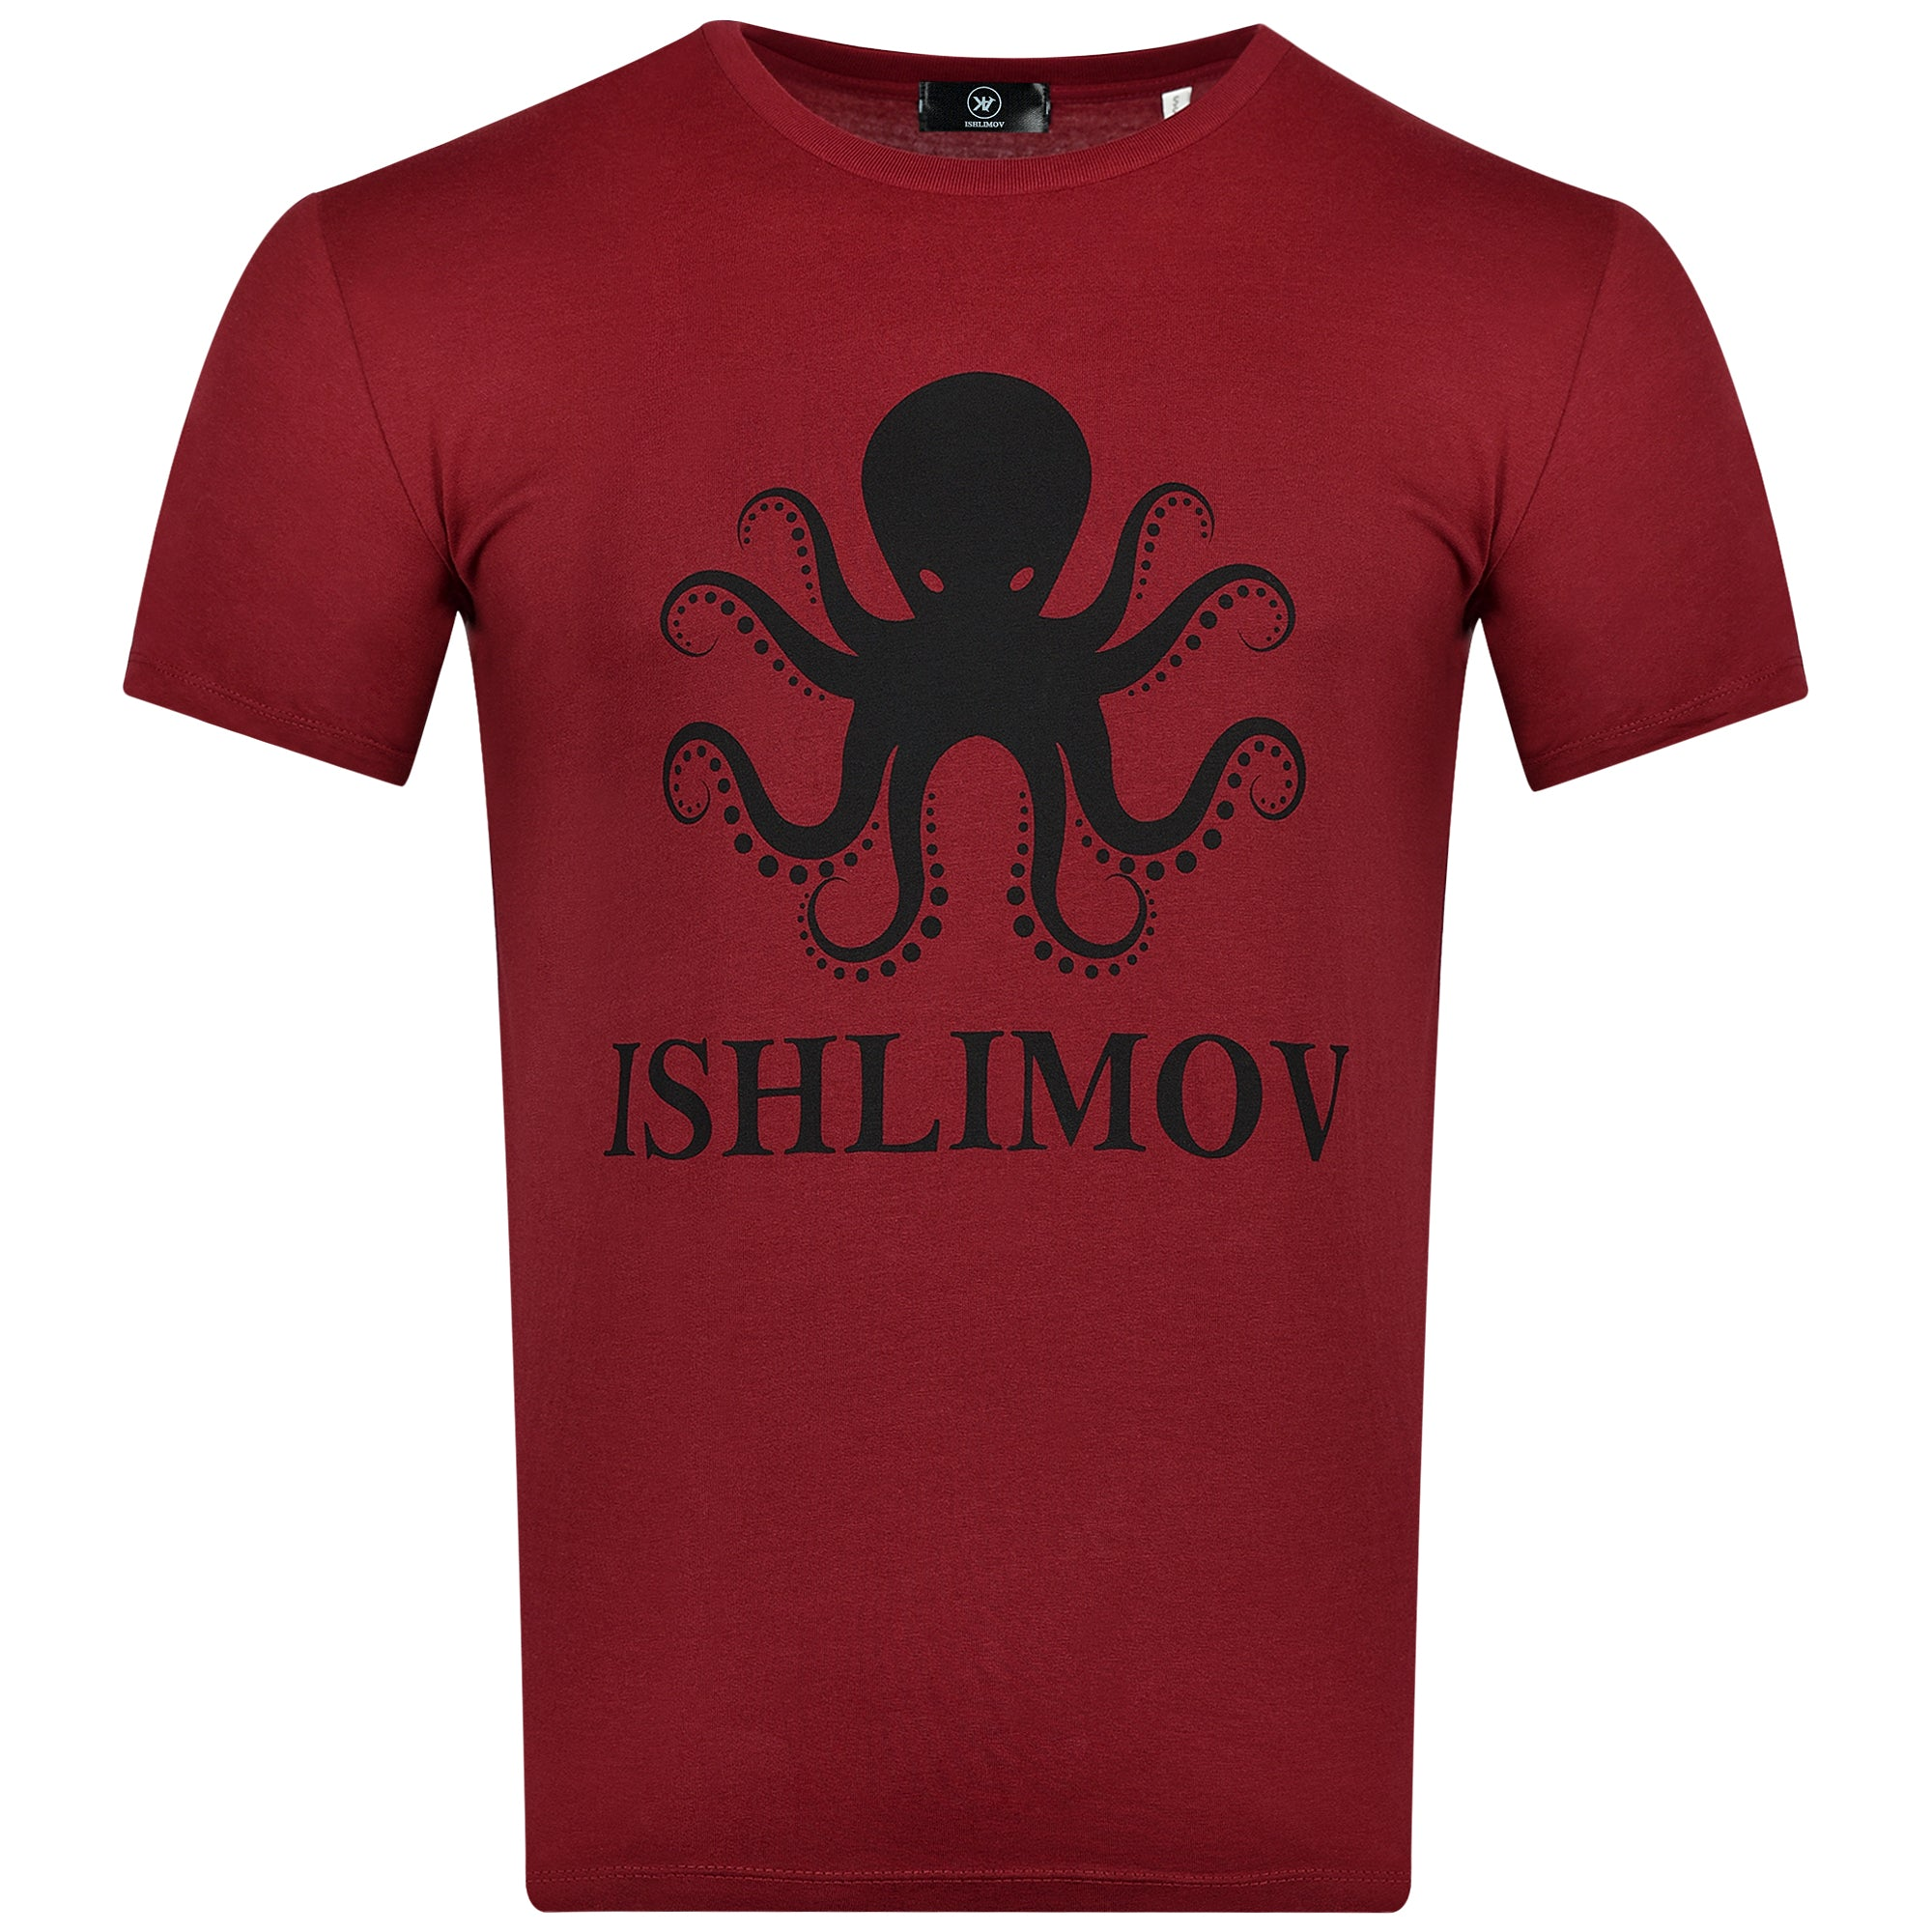 Cotton Octopus t-shirt